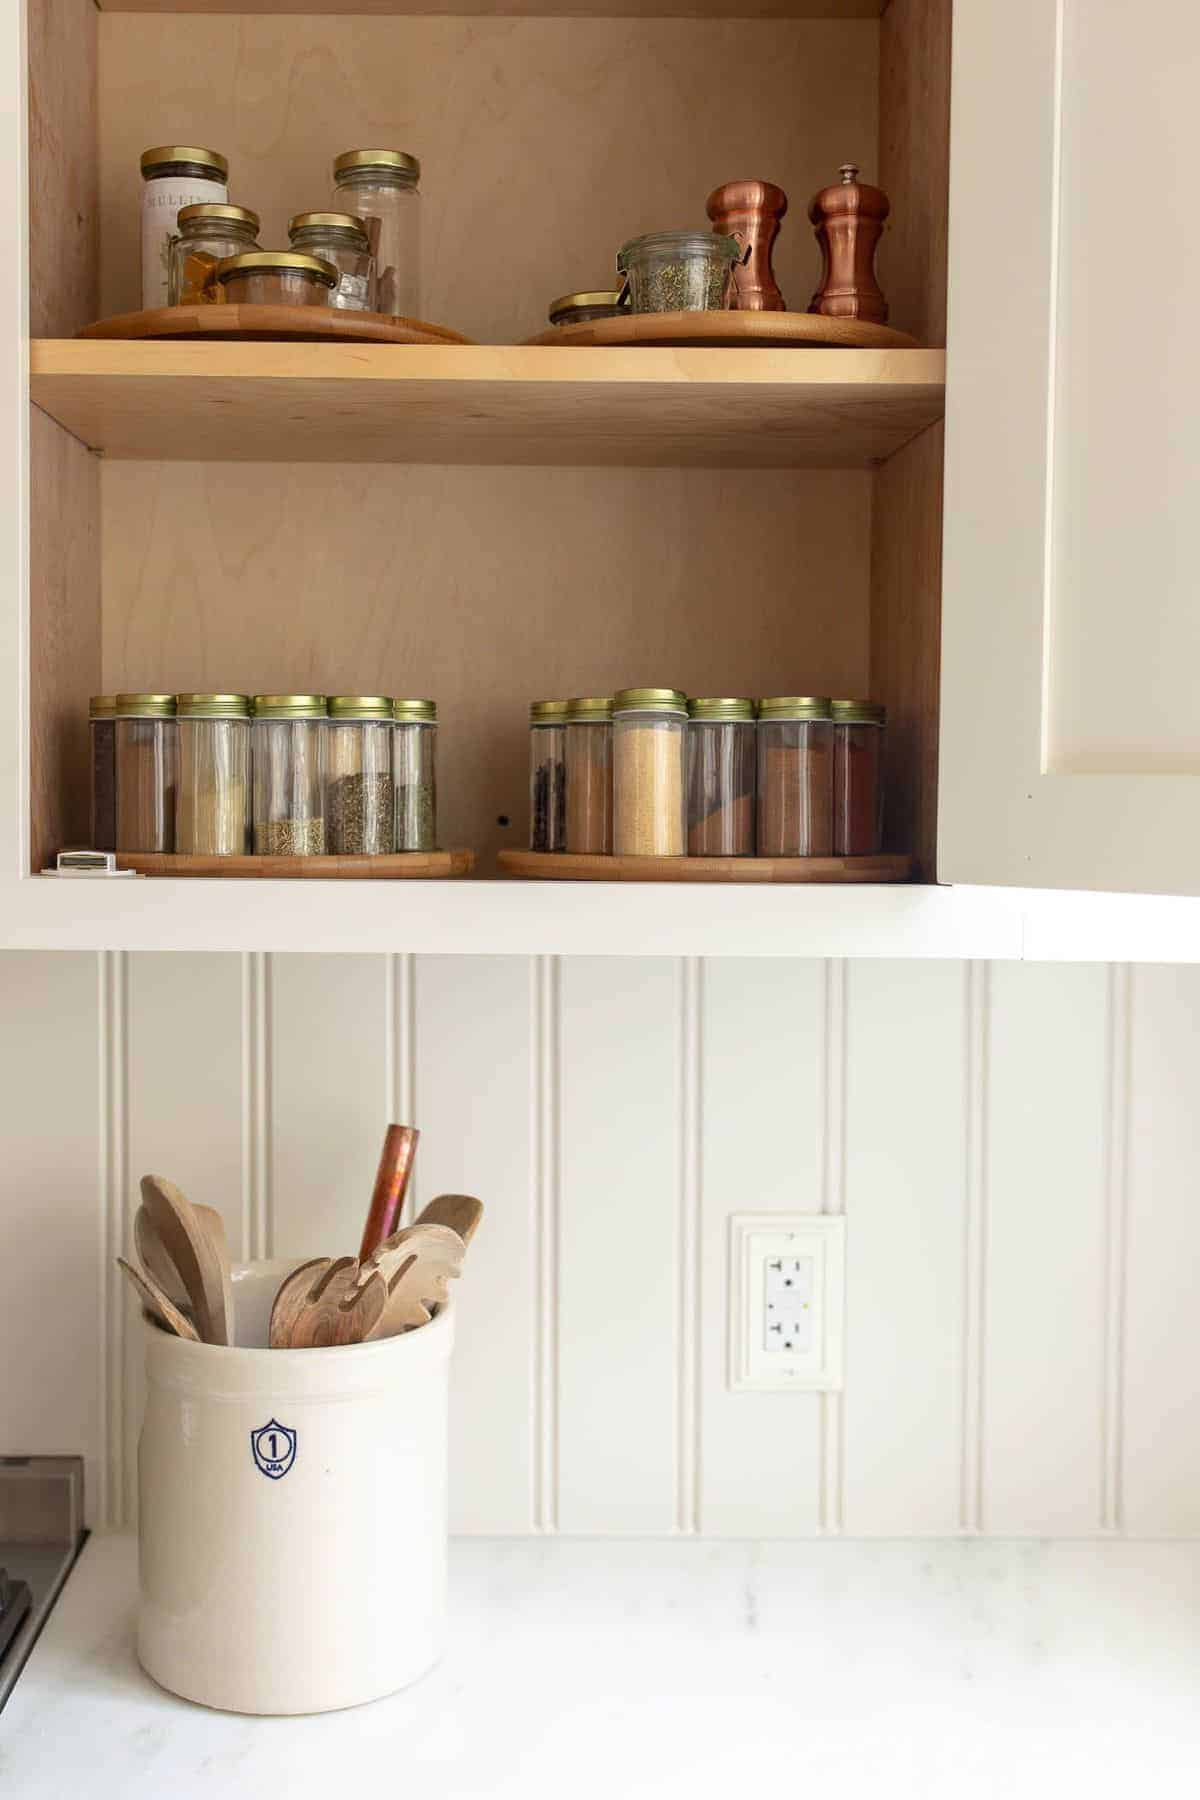 Simple cream kitchen with one cabinet open, clear glass spice jars on lazy susan inside.